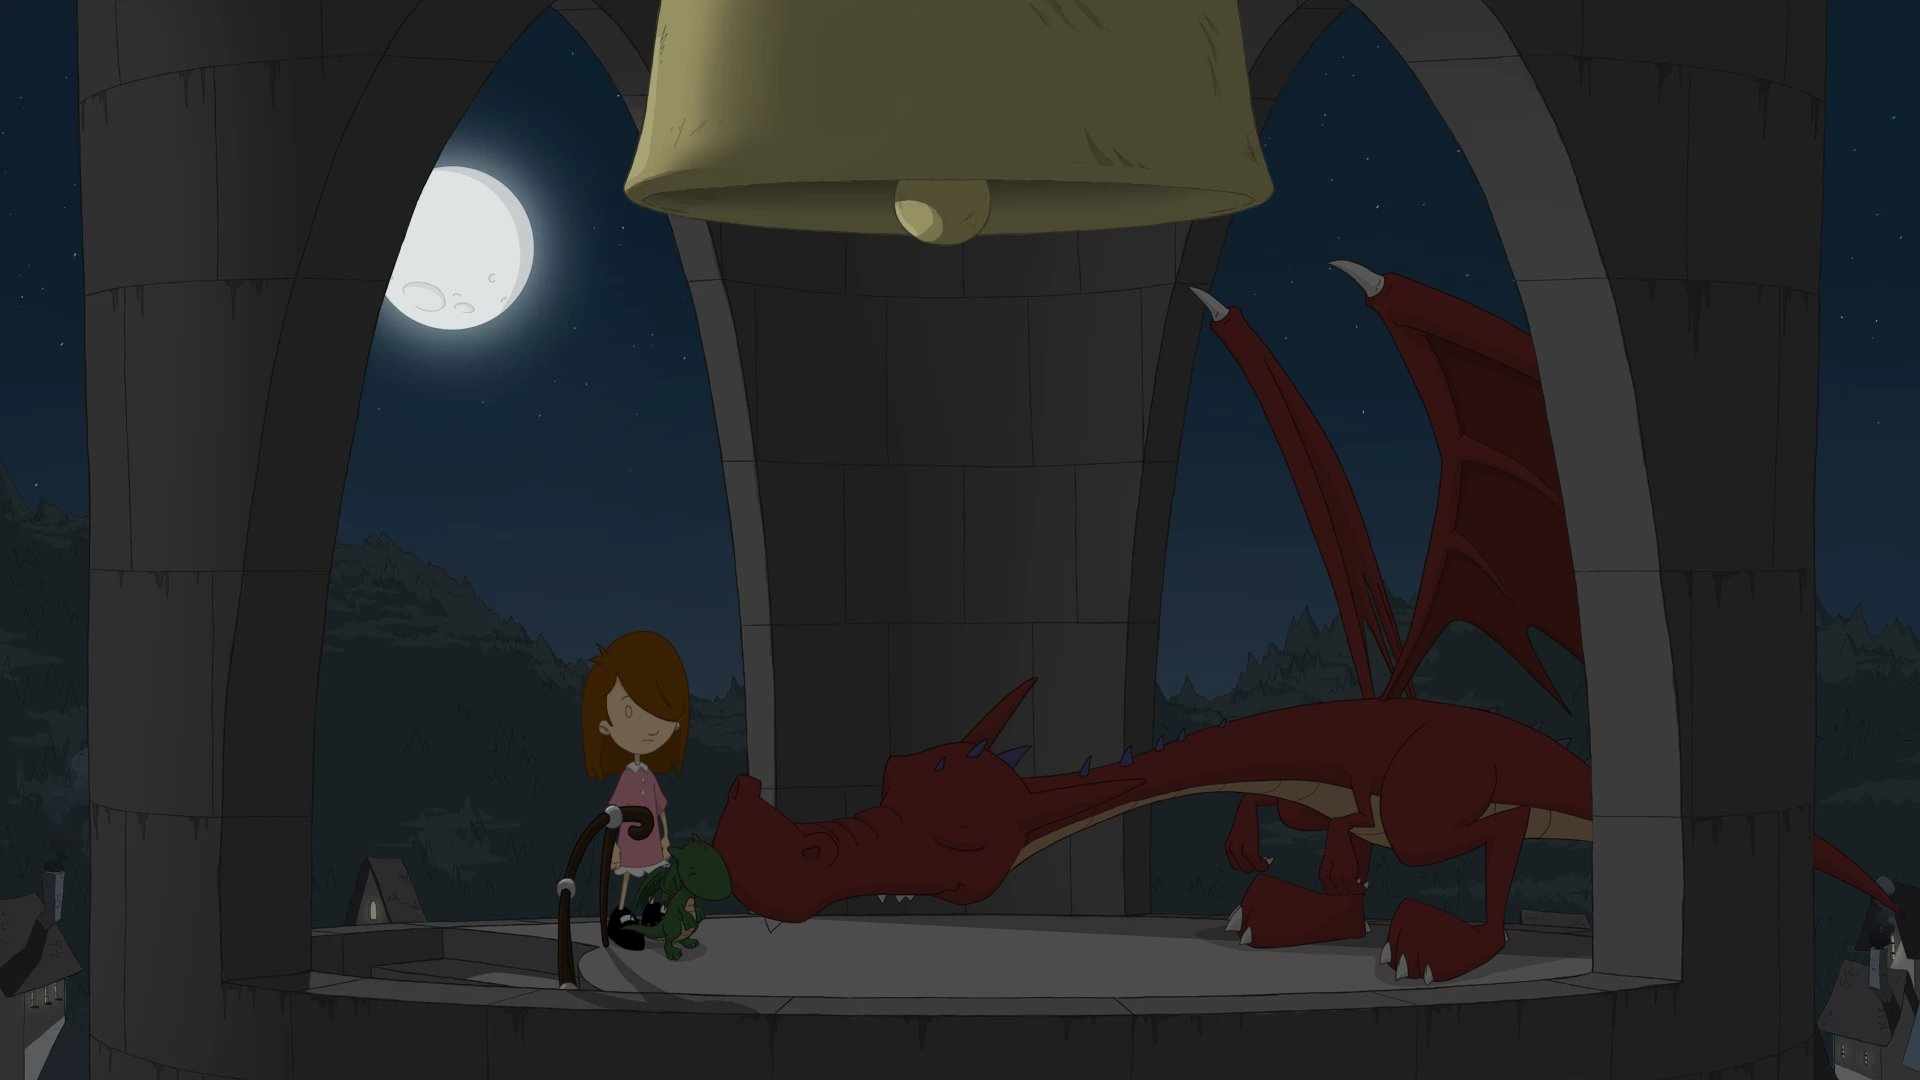 A screenshot of Anna at the top of a belltower, standing next to a large, sleeping dragon and a much smaller, cuter green dragon.